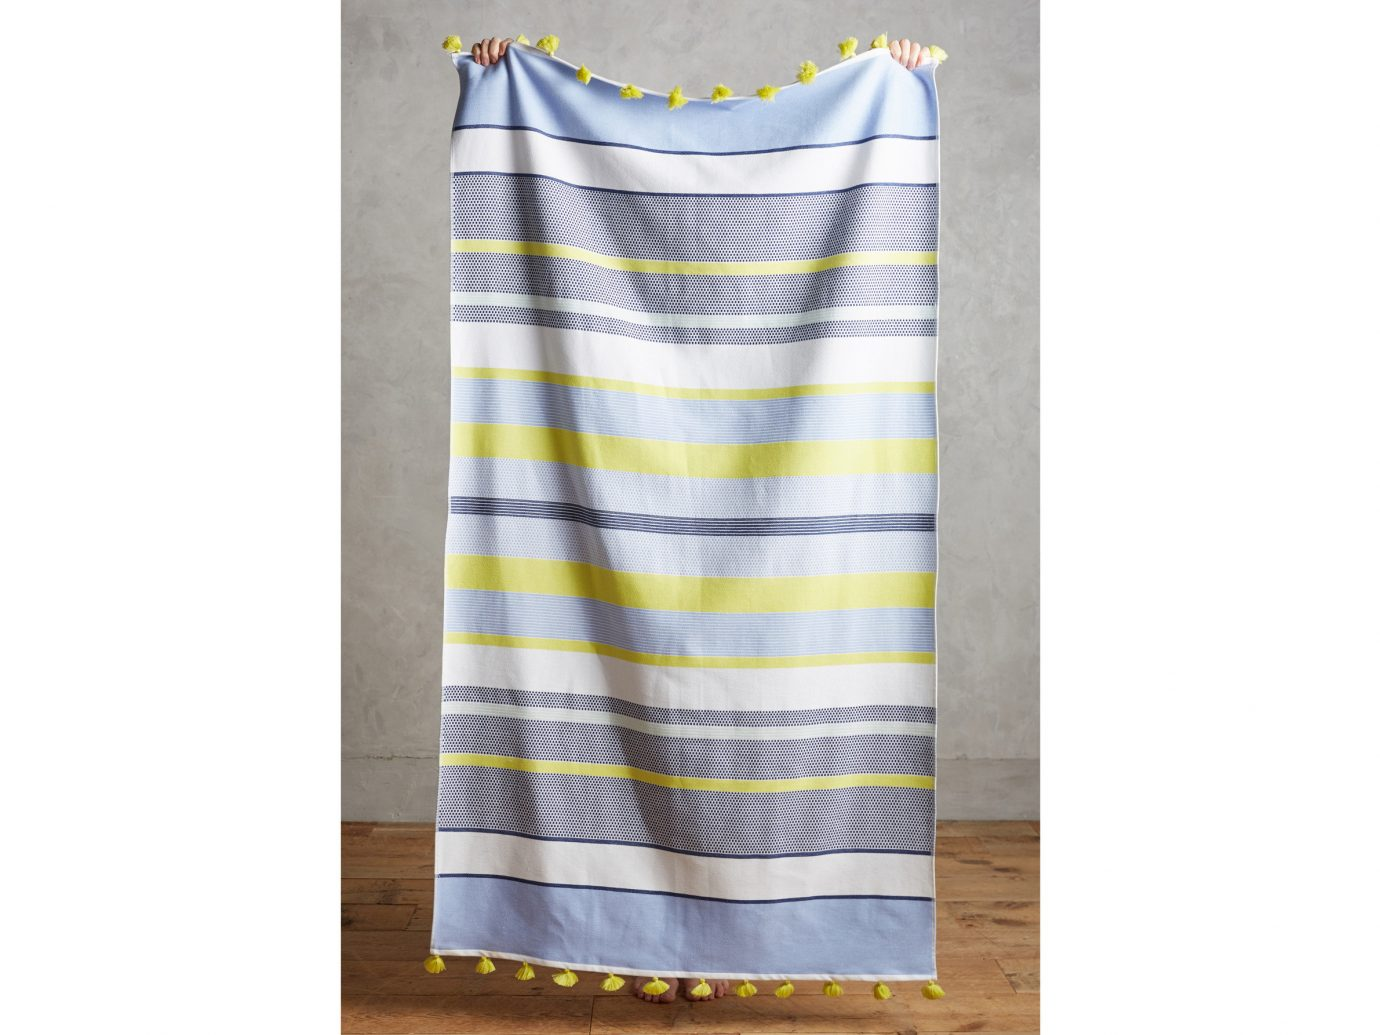 Style + Design yellow indoor textile pattern linens plaid product colorful colored